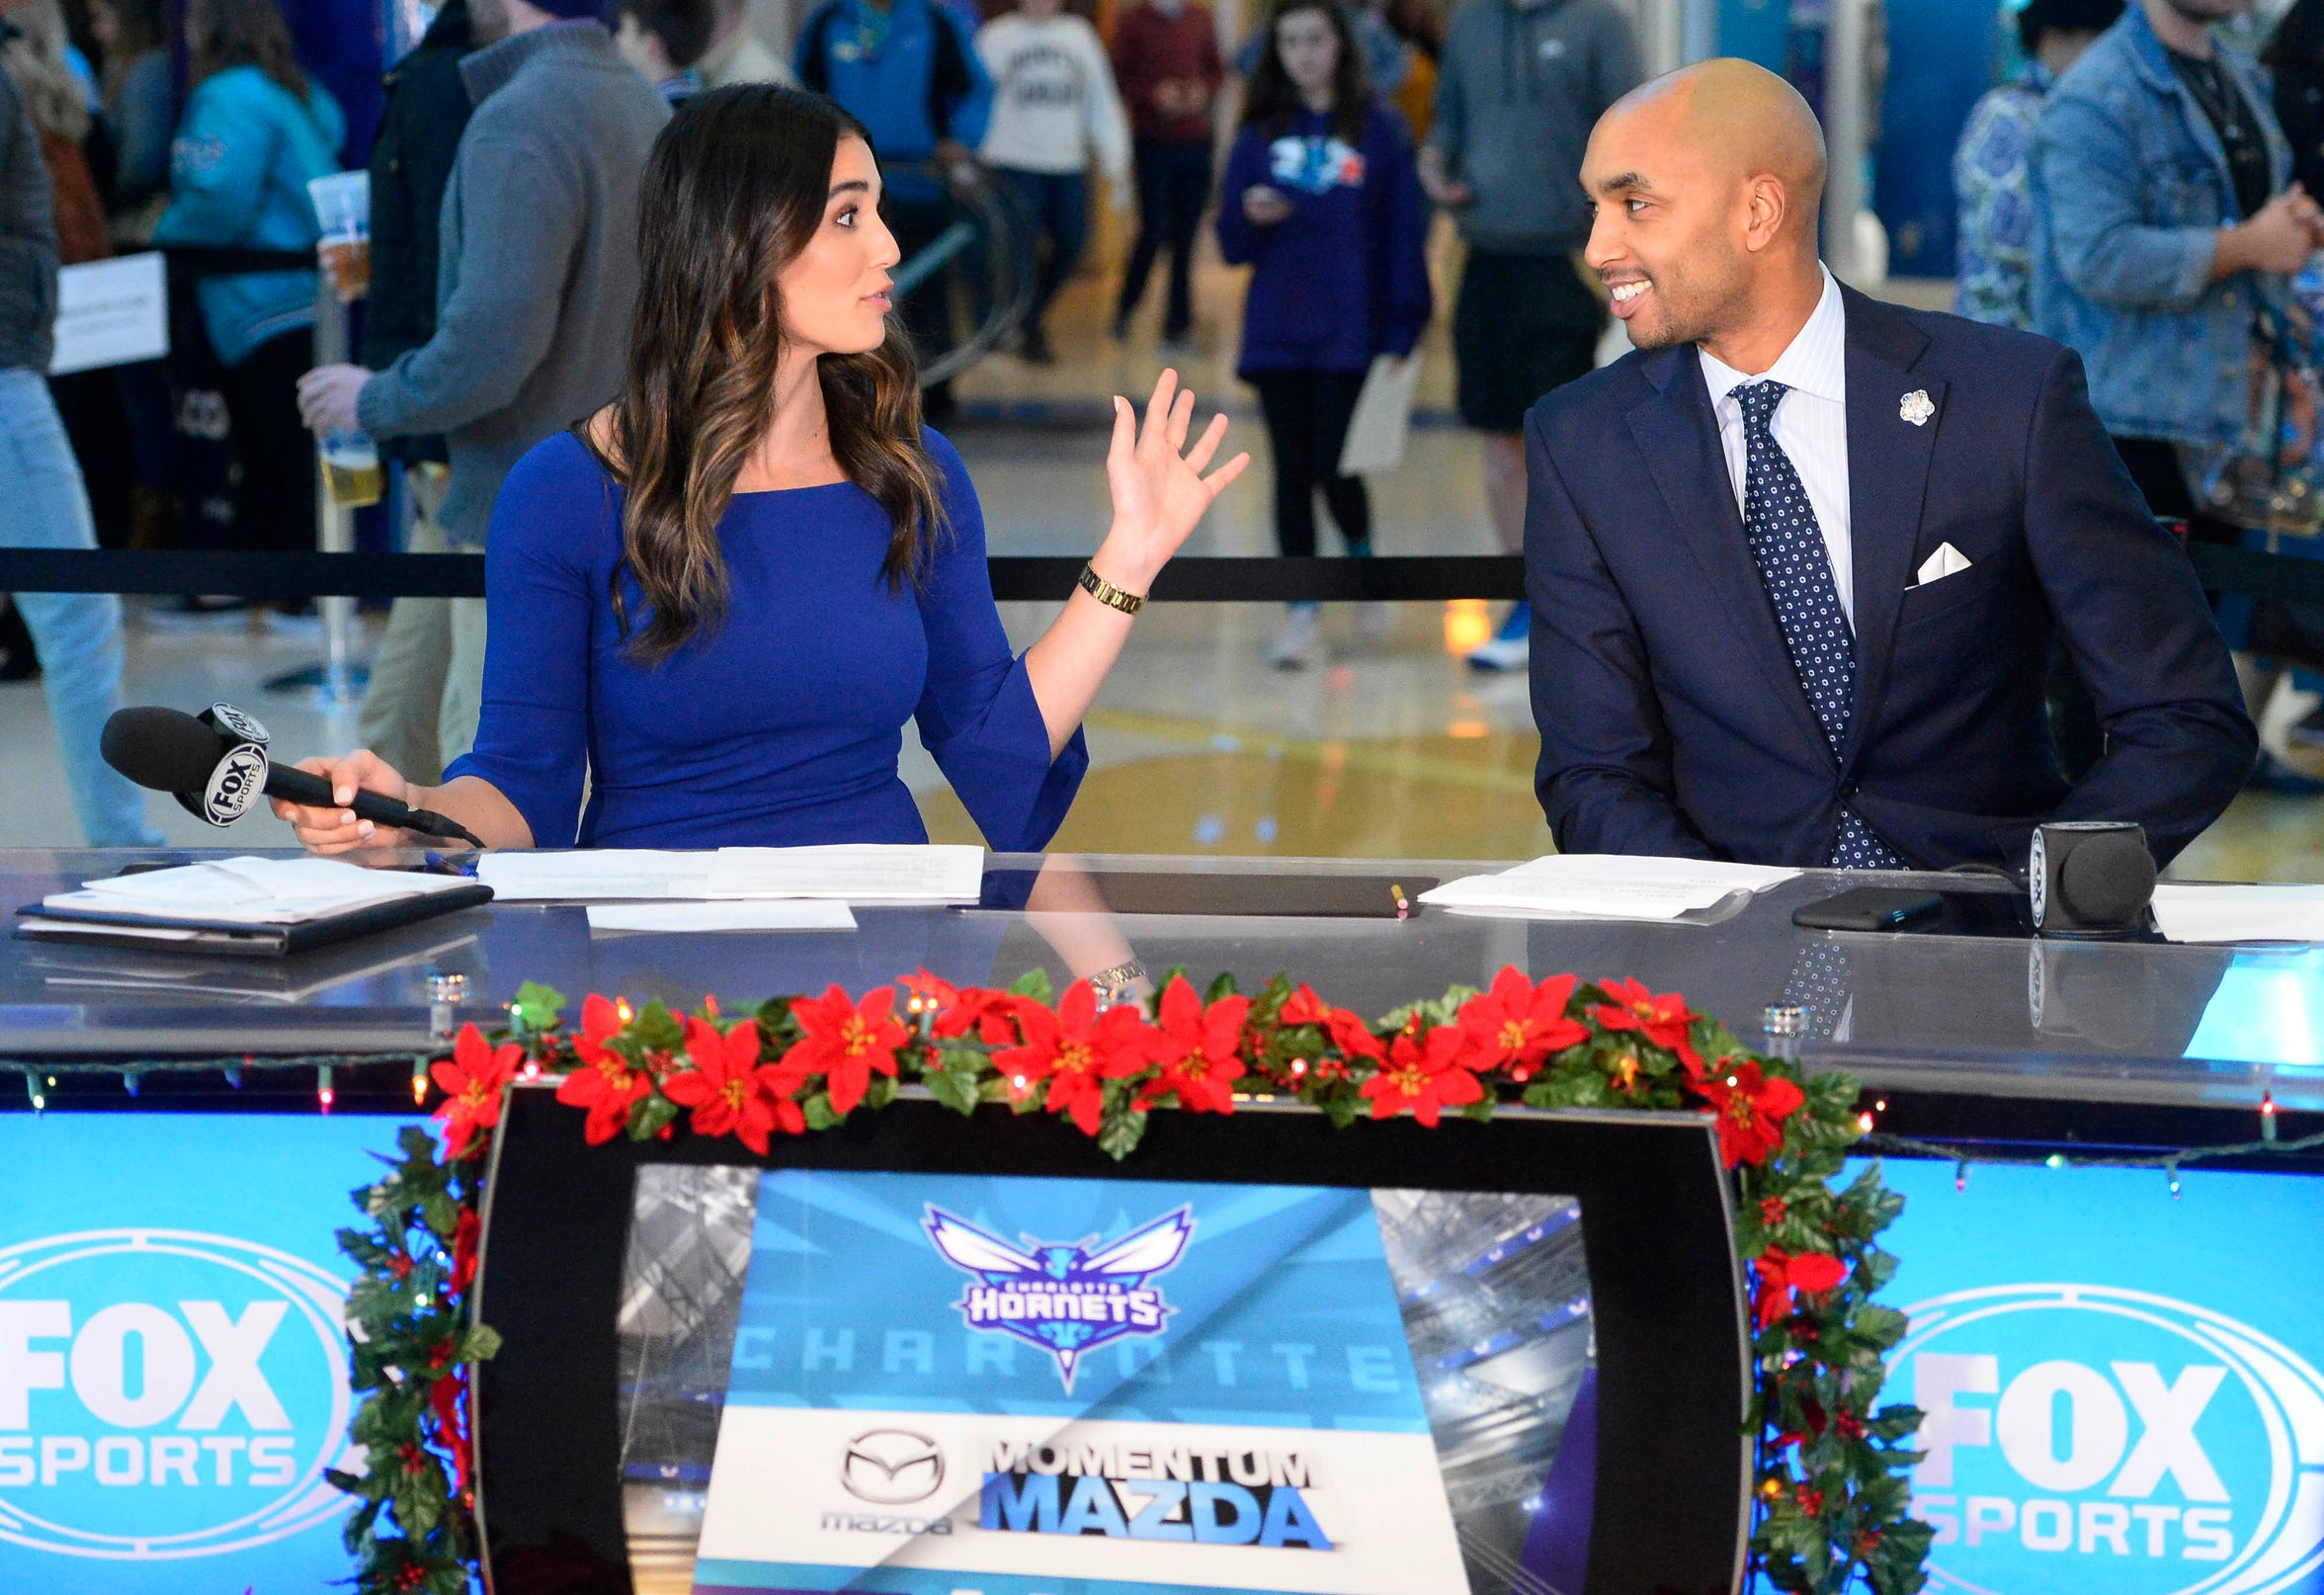 In this Wednesday, Dec. 19, 2018 photo, Ashley ShahAhmadi jokes with former Charlotte Hornet Gerald Henderson prior to the Charlotte Hornets game against the Cleveland Cavaliers at the Spectrum Center in Charlottes, N.C.